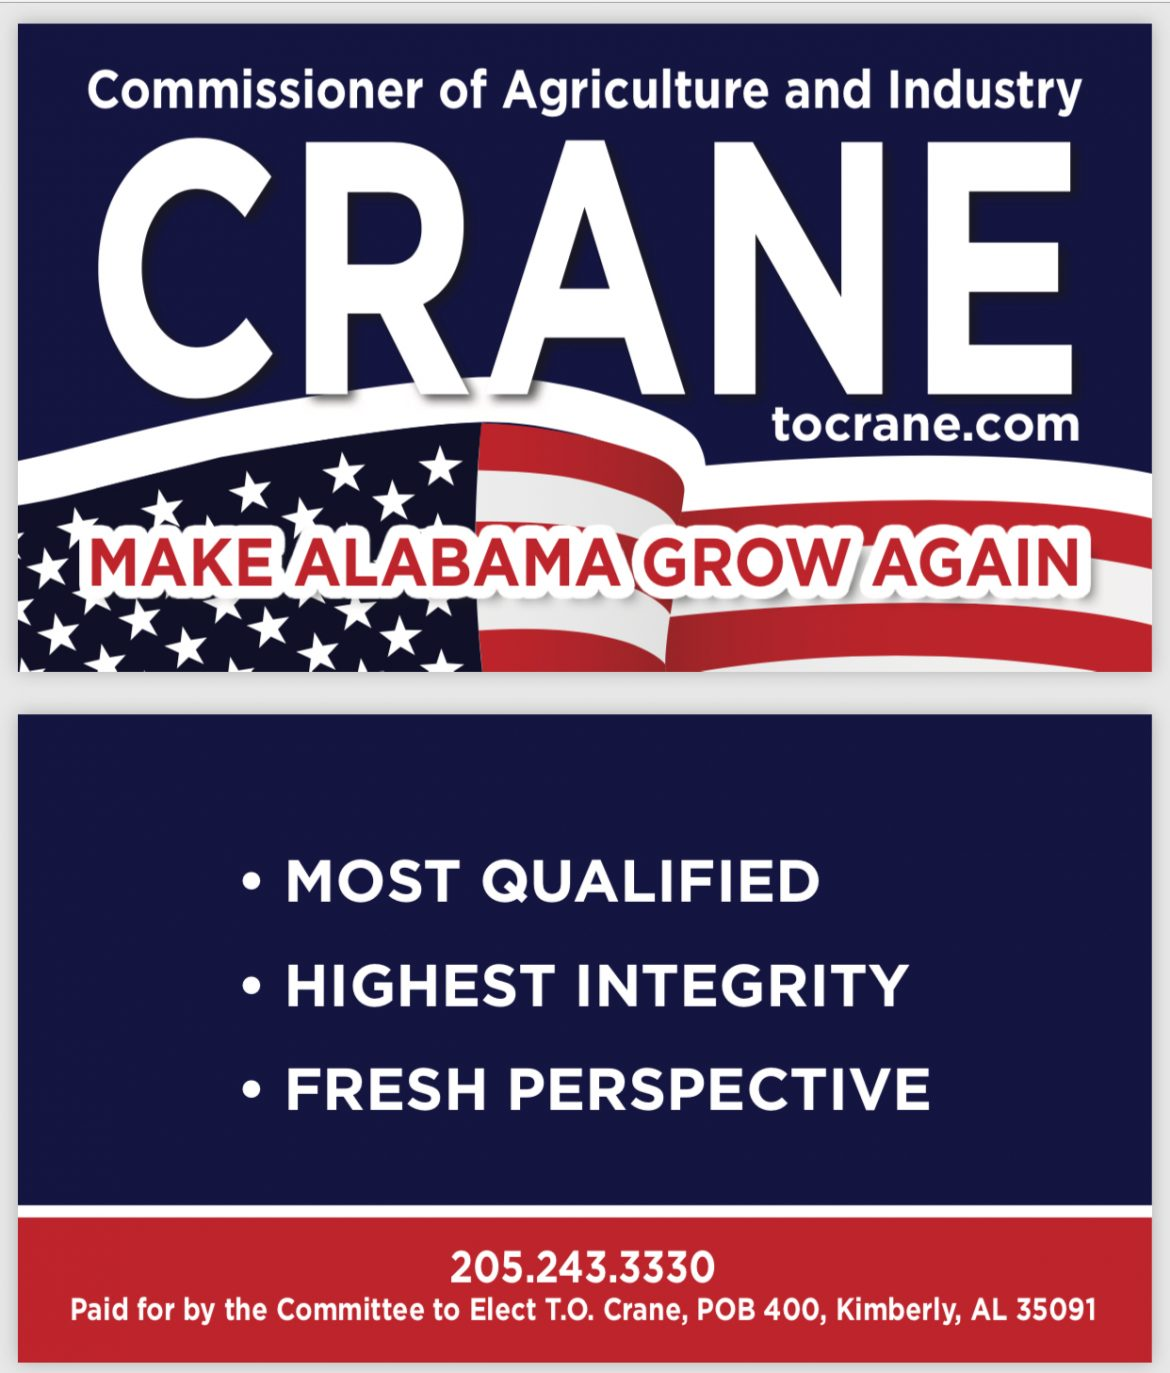 T.O. Crane for Commissioner of Agriculture and Business